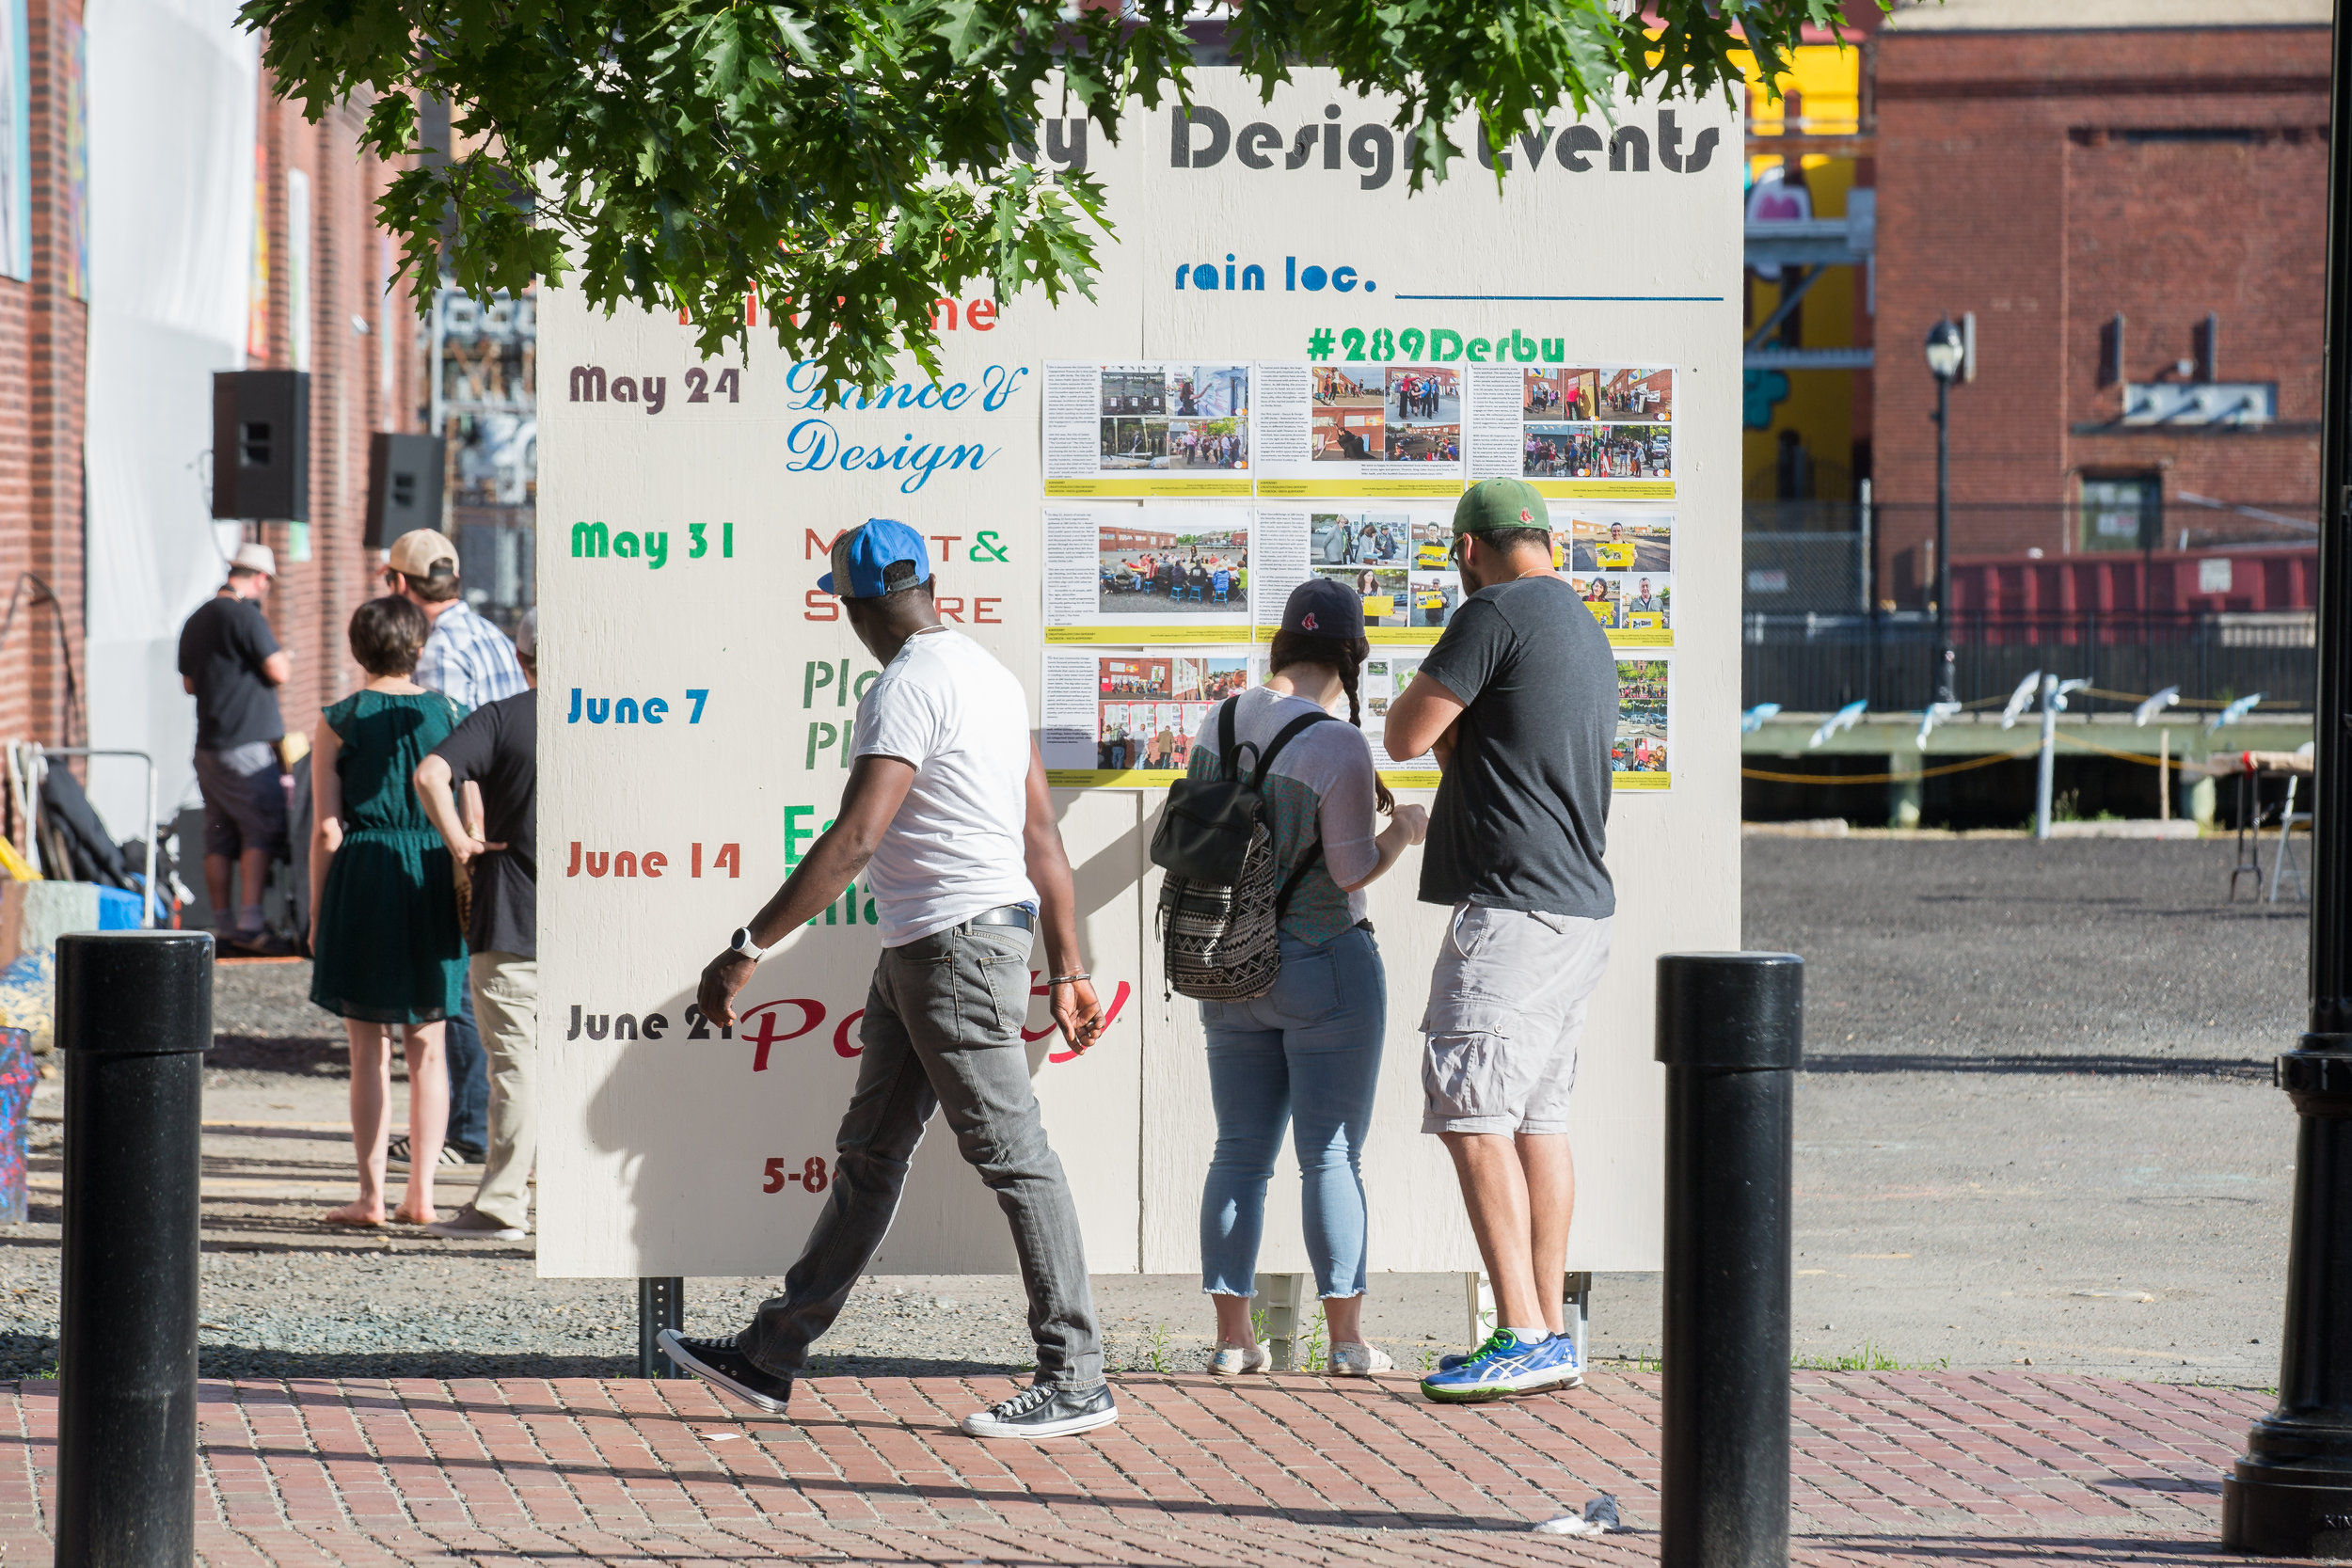 289 Derby Eat and imagine John Andrews Photography for Creative Salem-1309.jpg